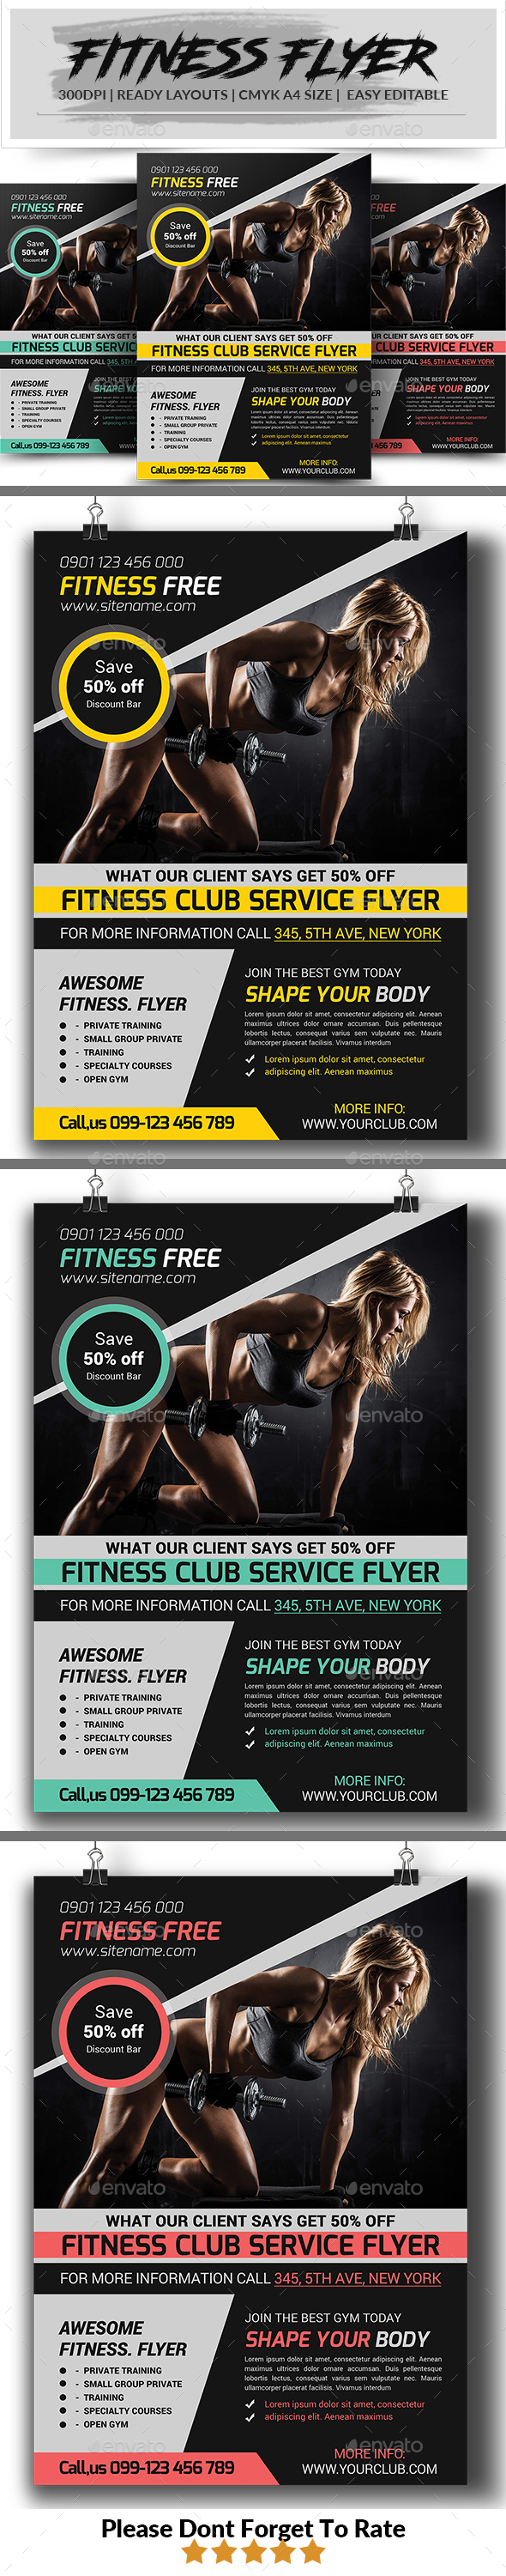 Fitness Flyer Graphics, Designs & Templates from GraphicRiver